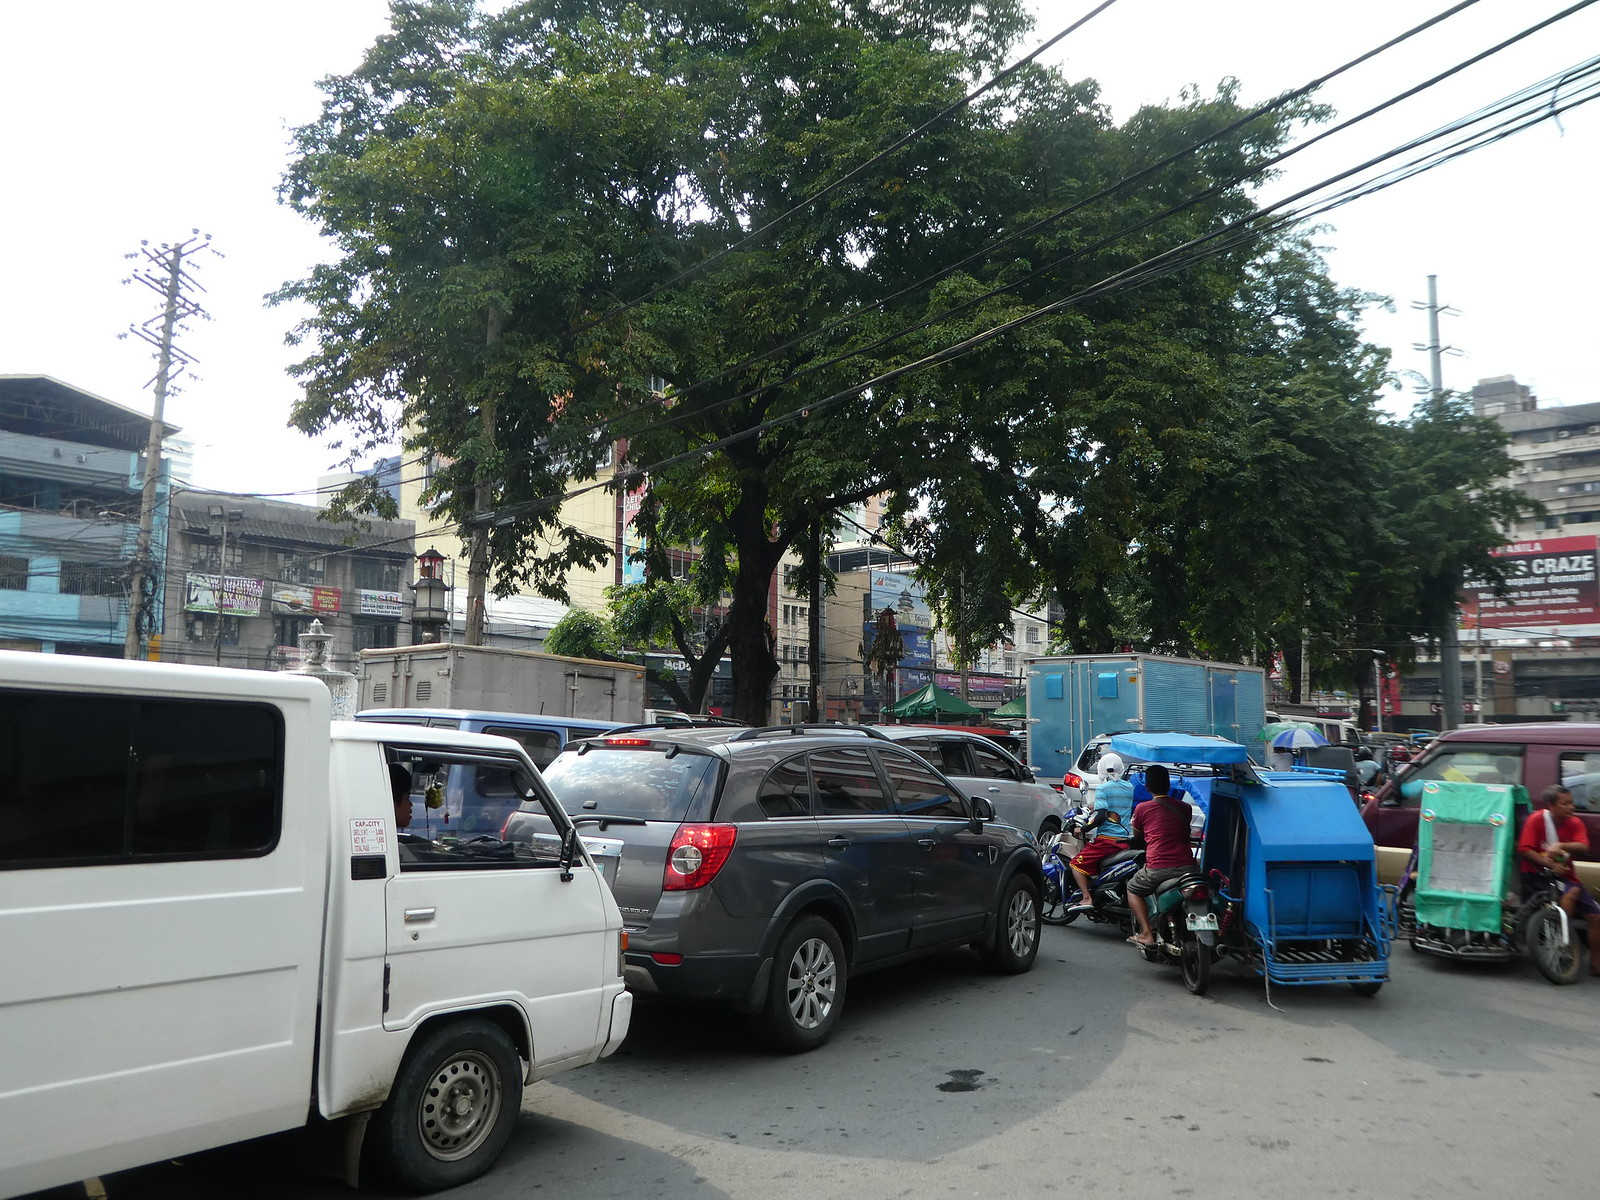 Traffic chaos in Chinatown, Manila